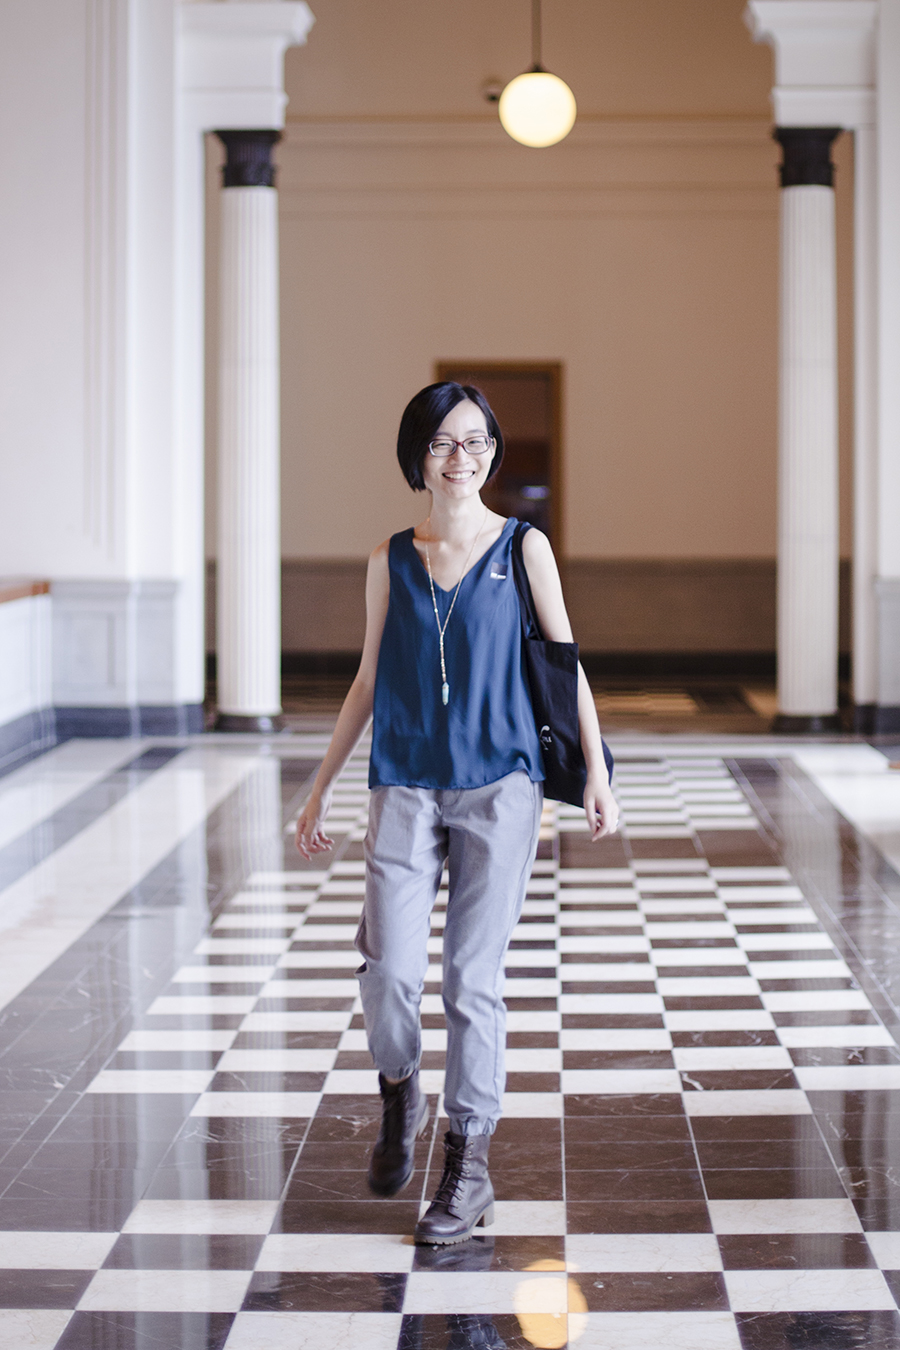 National Gallery Singapore: walking on checkered floor.